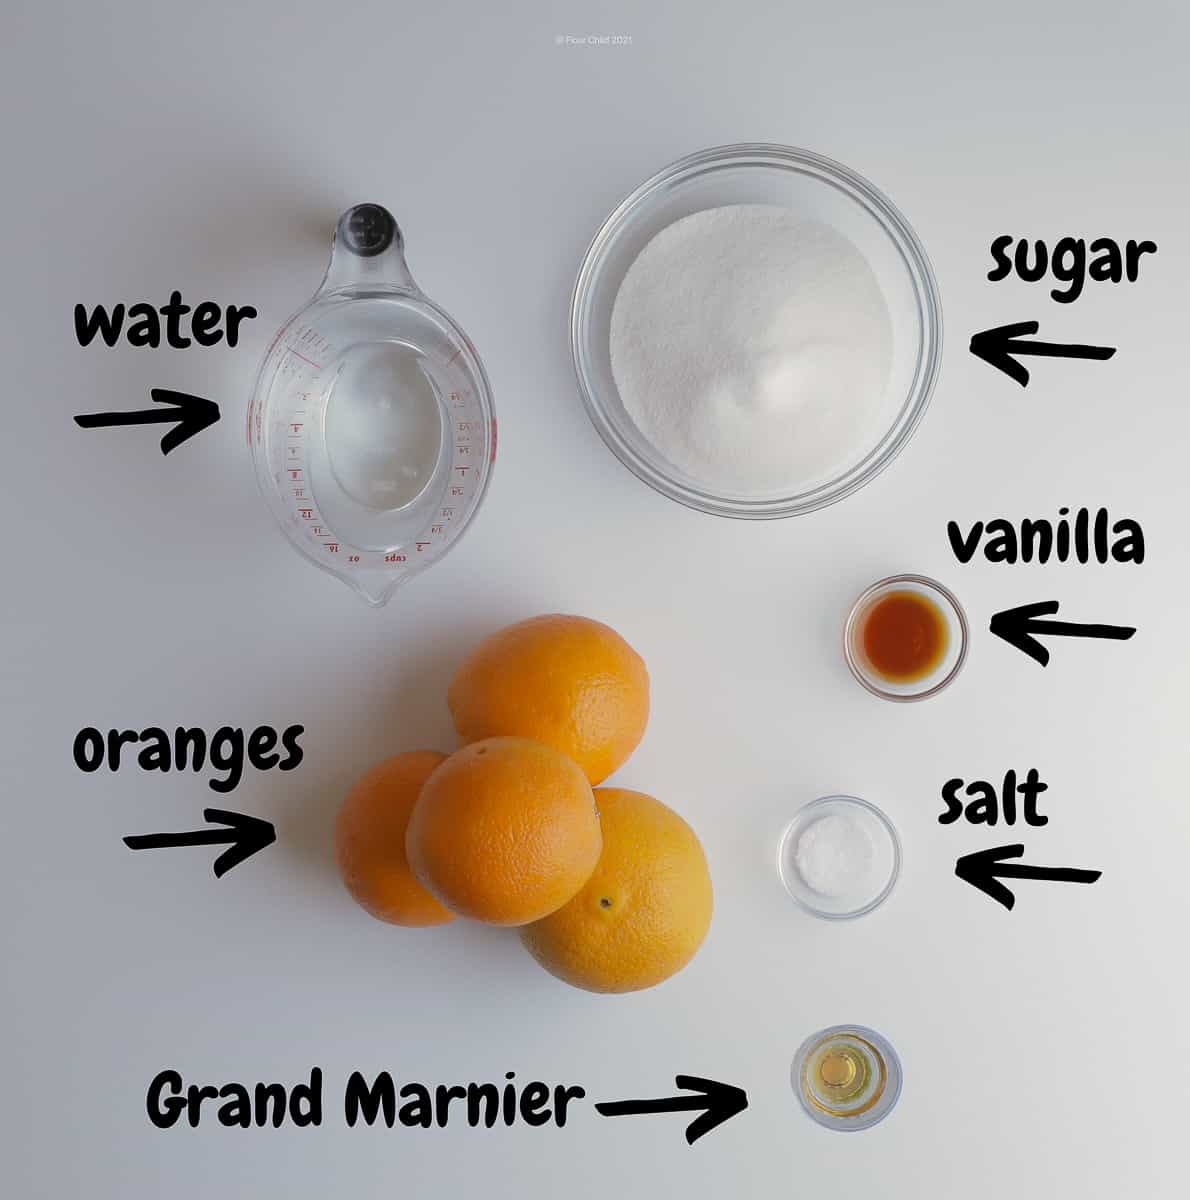 Ingredients for candied orange peel set on a countertop, including water, sugar, oranges, vanilla, salt and Grand Marnier